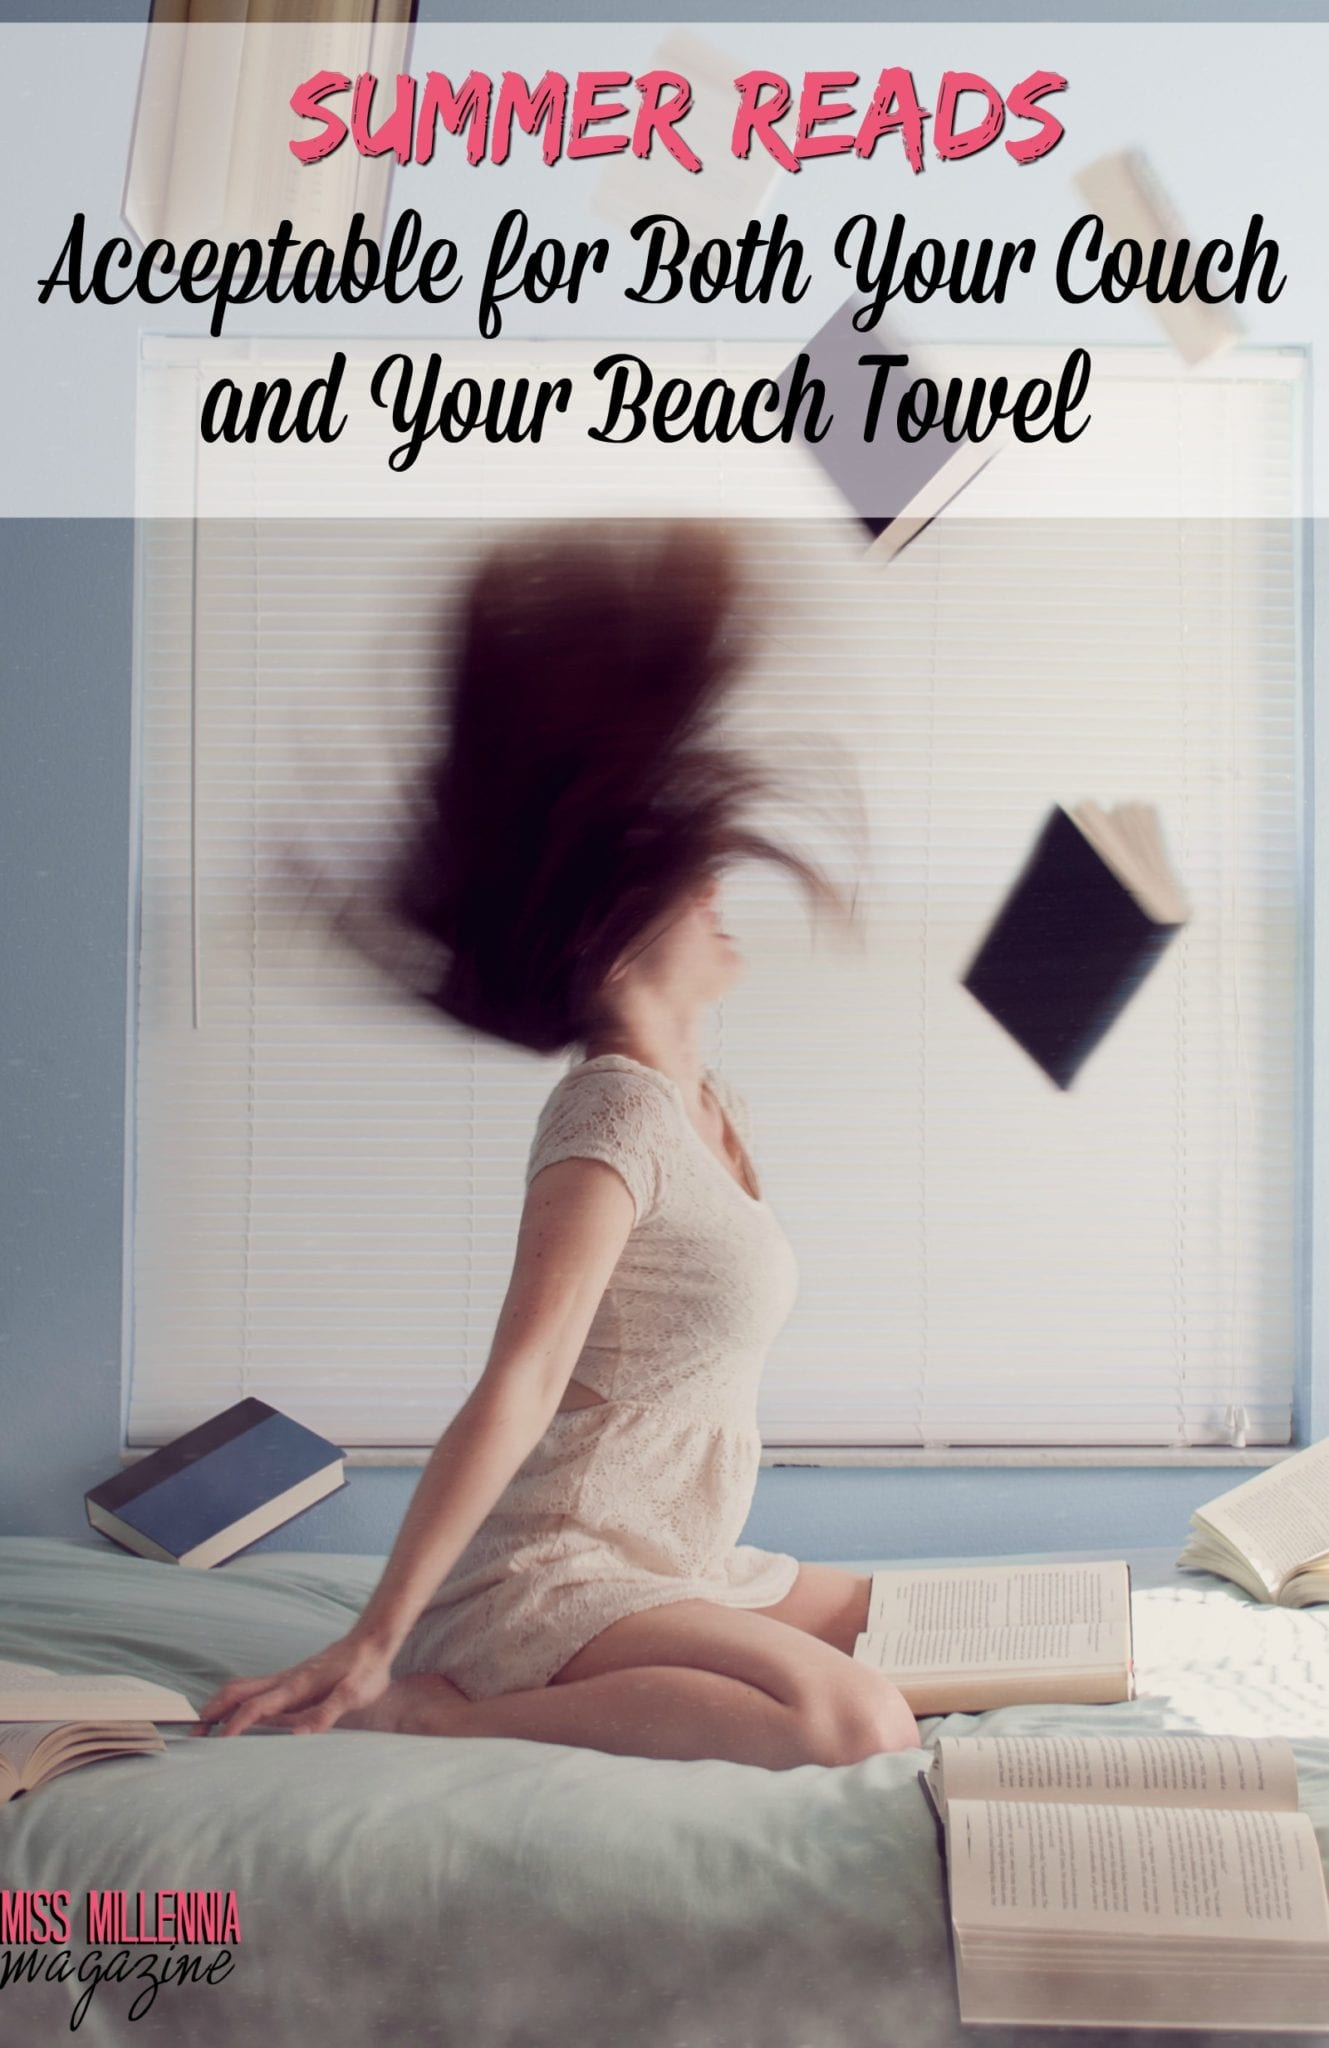 summer reads acceptable for both your couch and your beach towel miss millennia magazine big. Black Bedroom Furniture Sets. Home Design Ideas